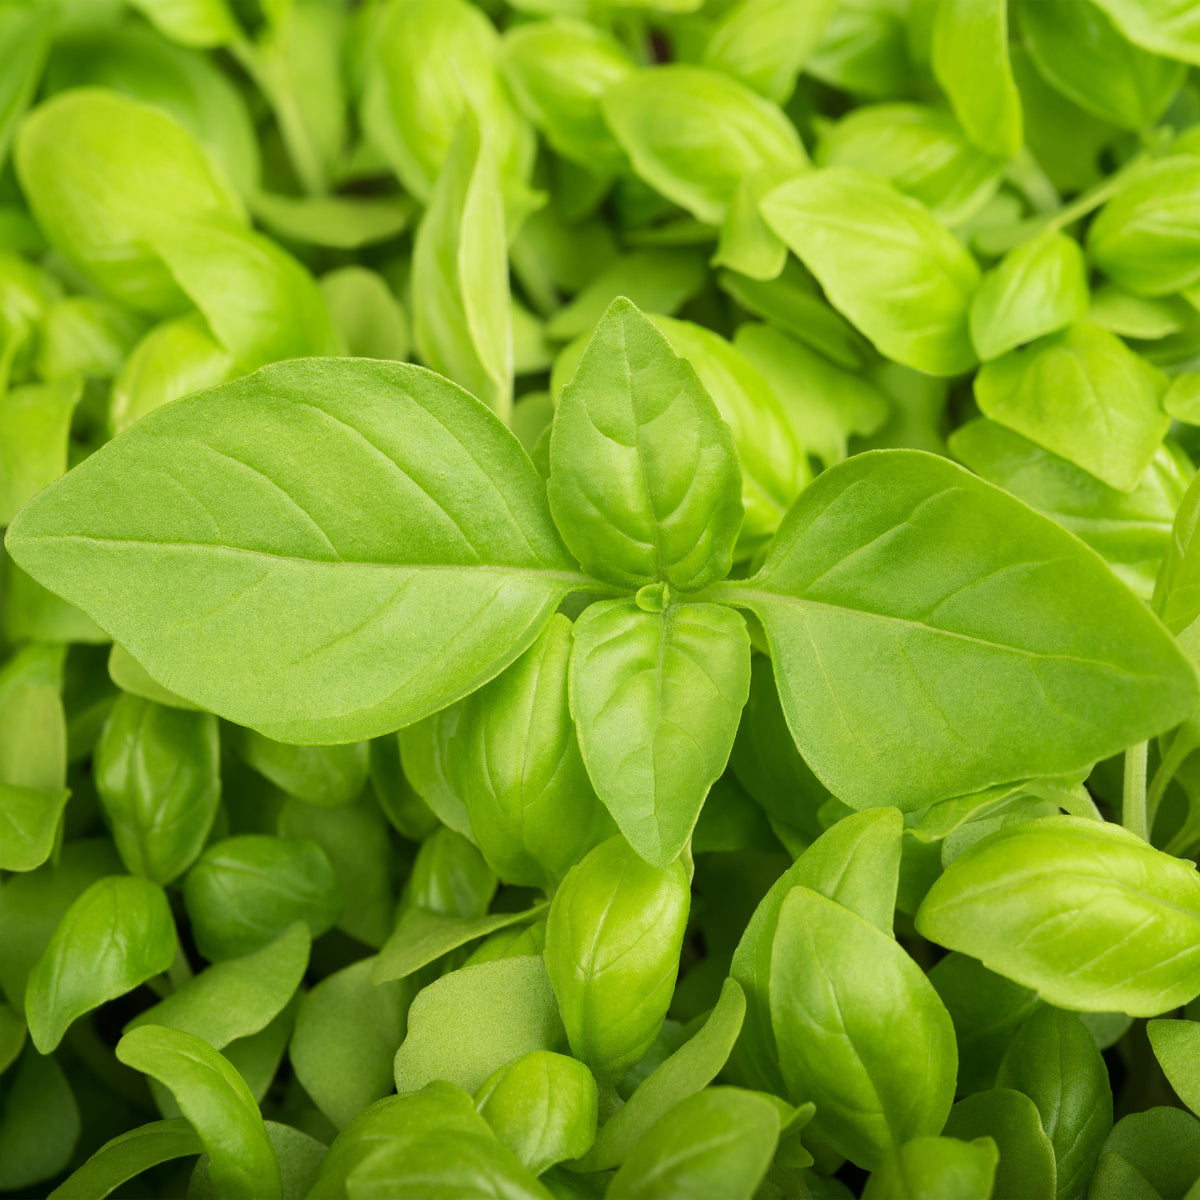 Lemon - Basil